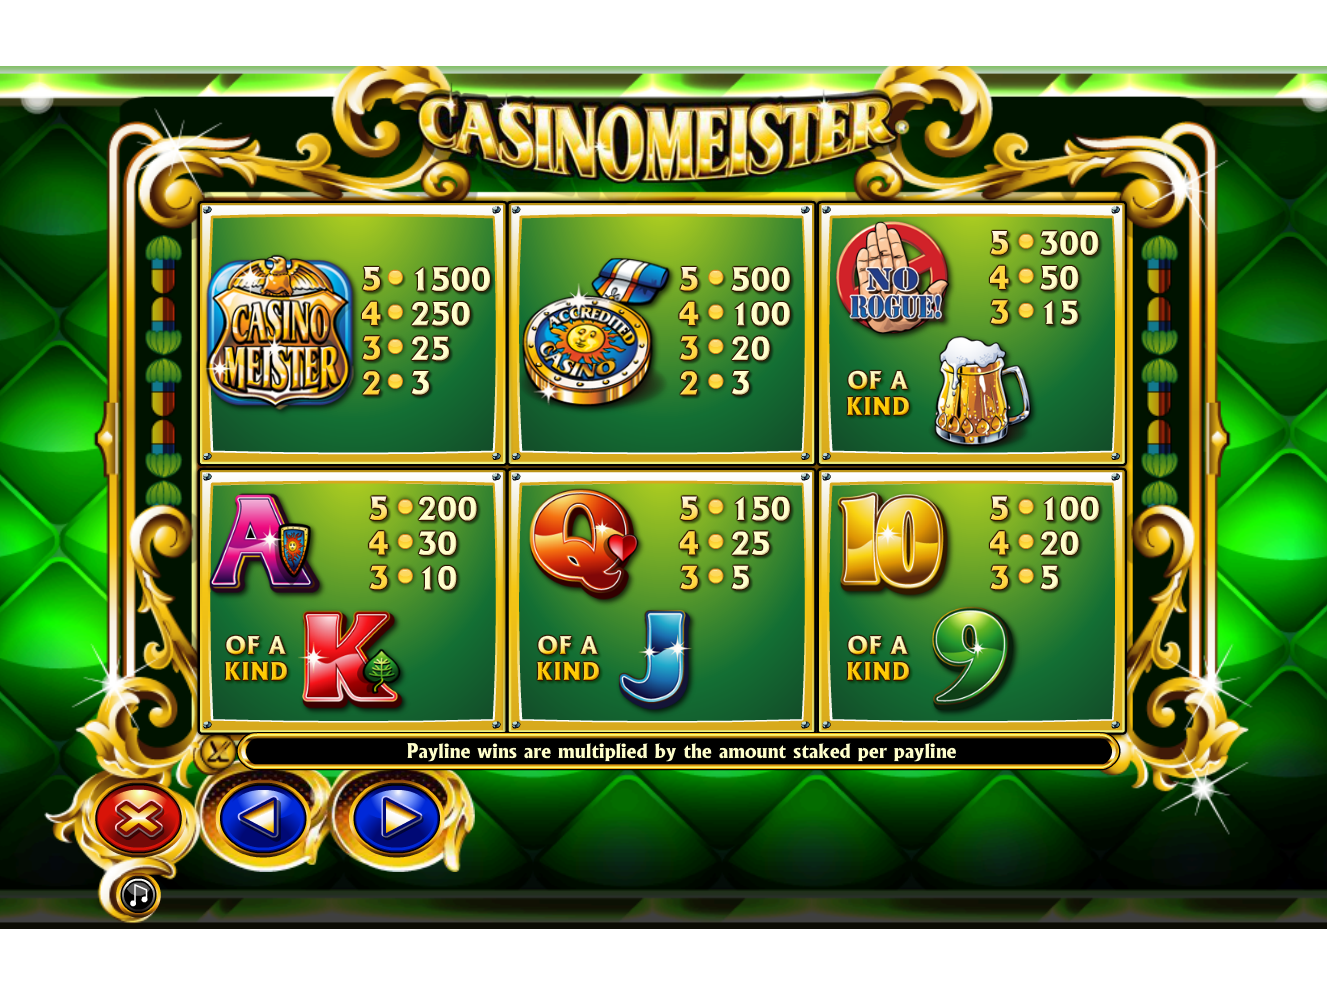 Casinomeister online gratis